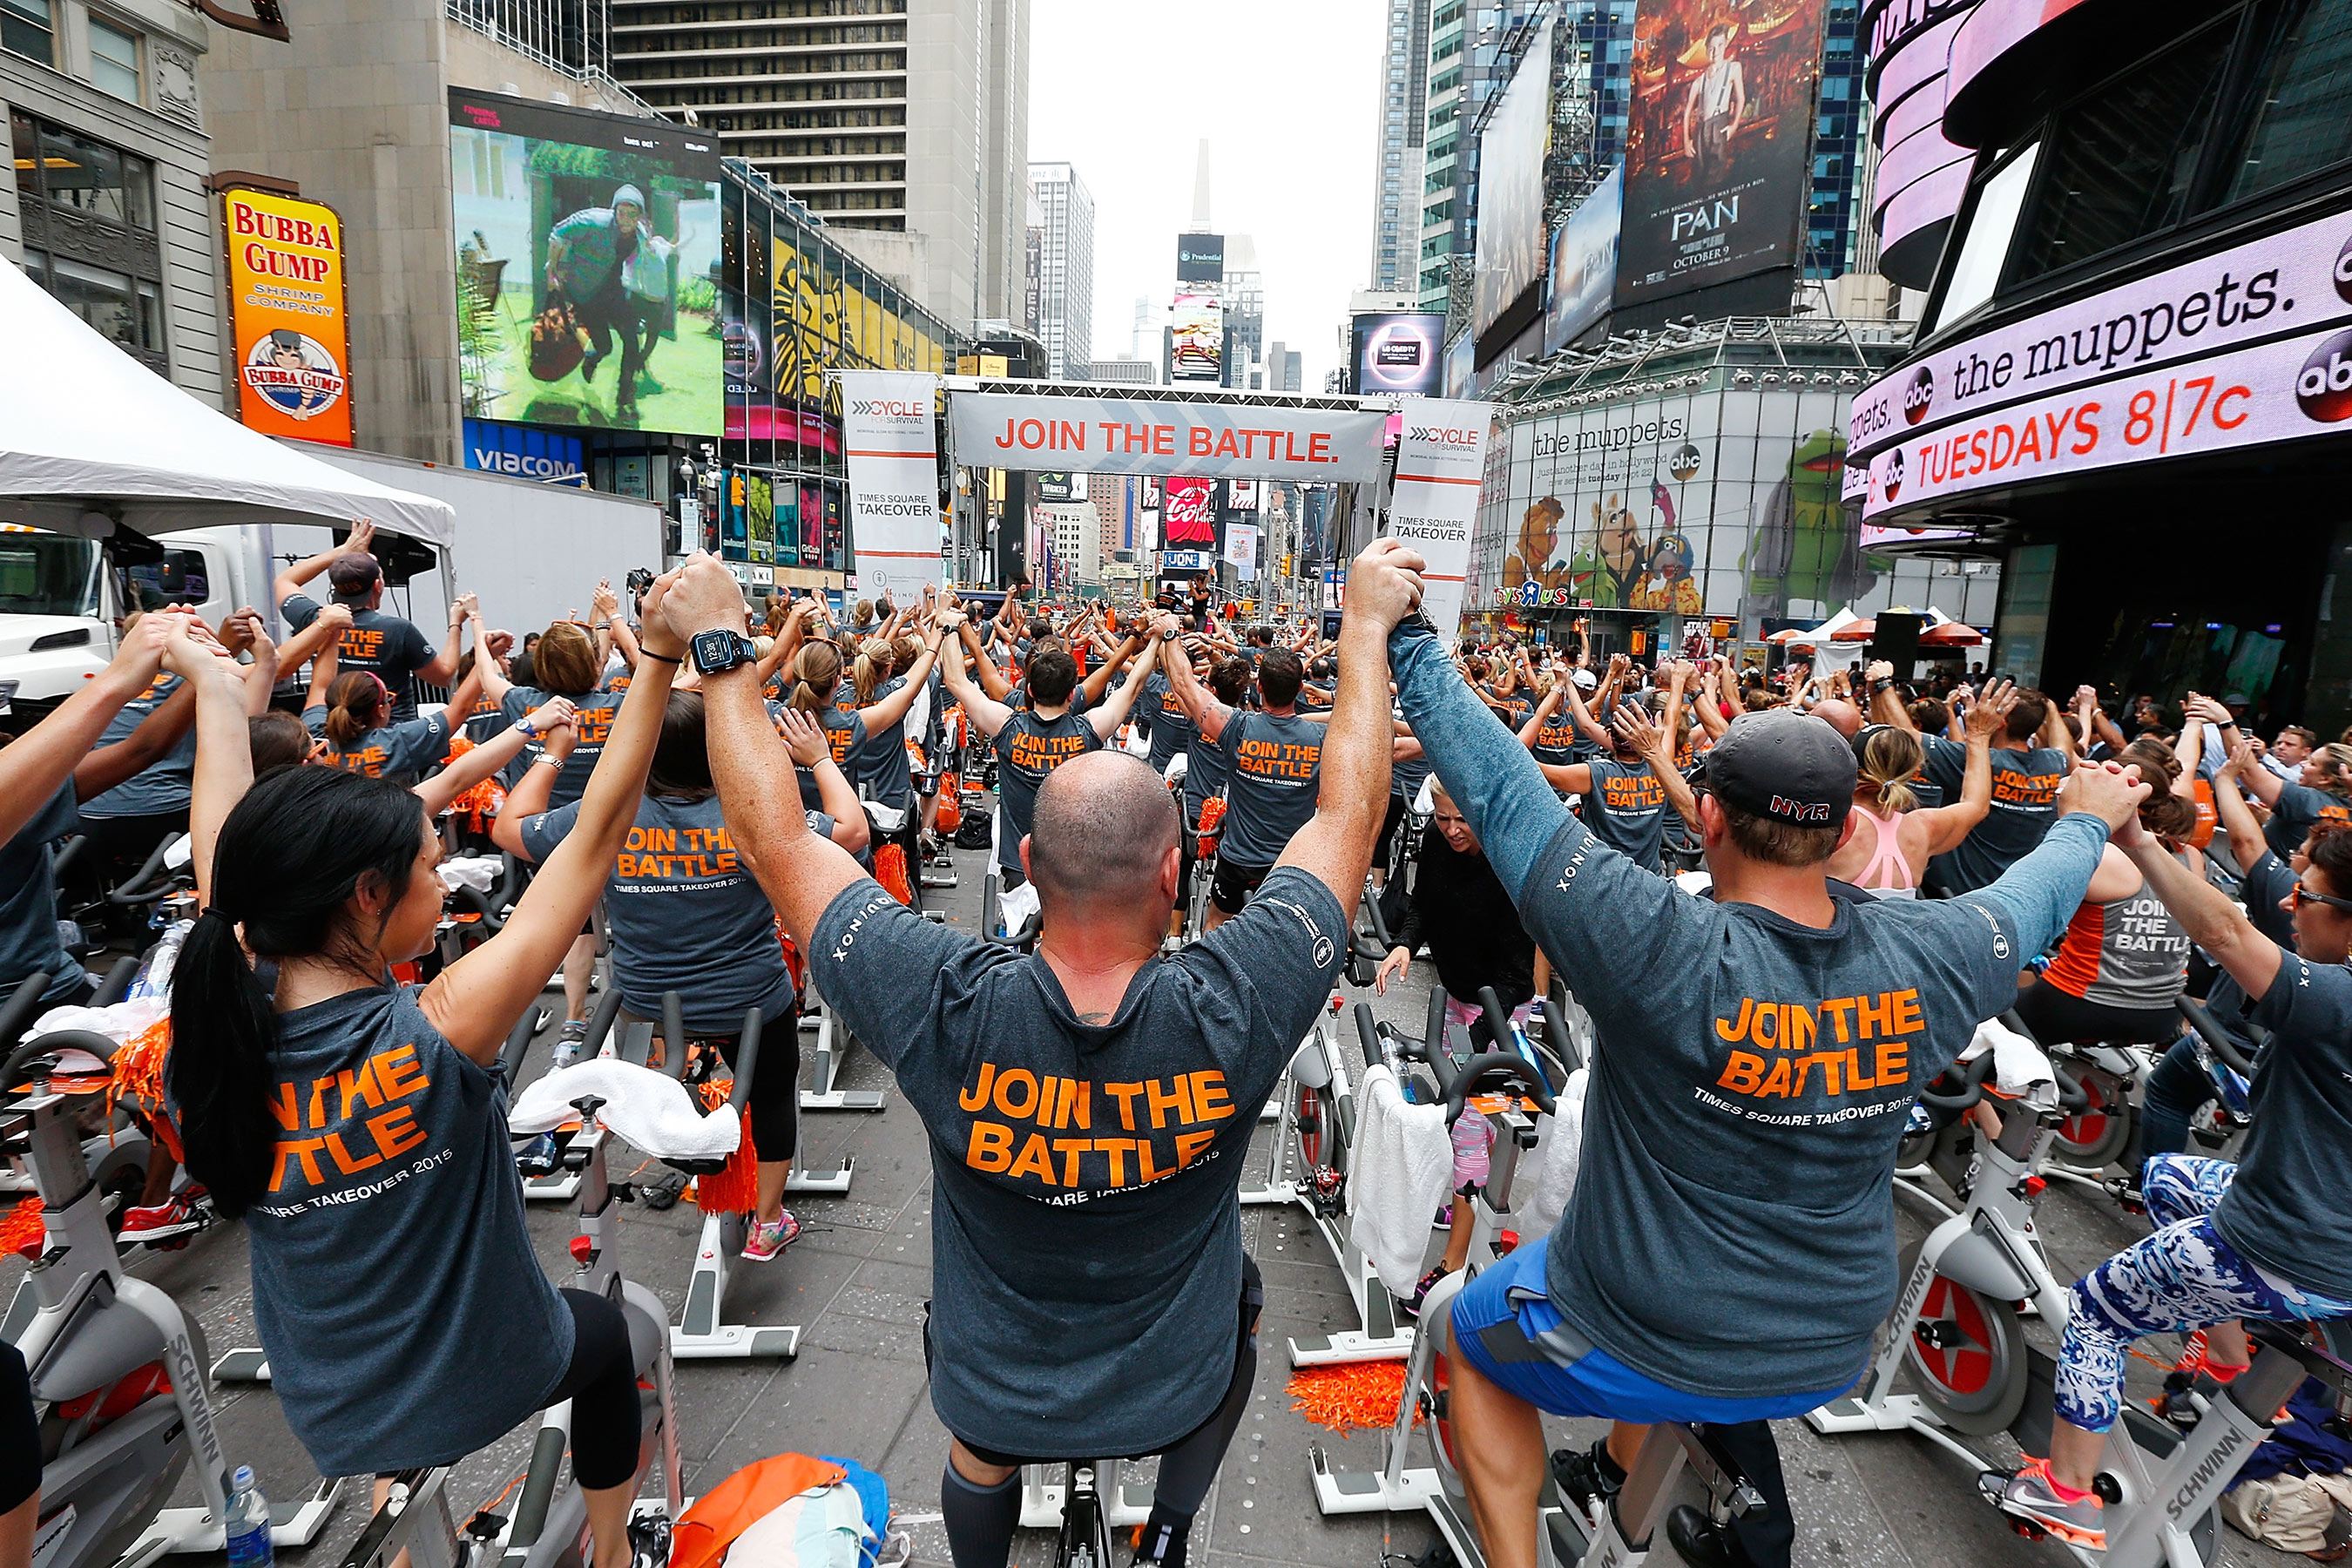 Star Mountain is a Proud Participant of the Annual Cycle for Survival Event for Rare Cancer Research in New York, NY